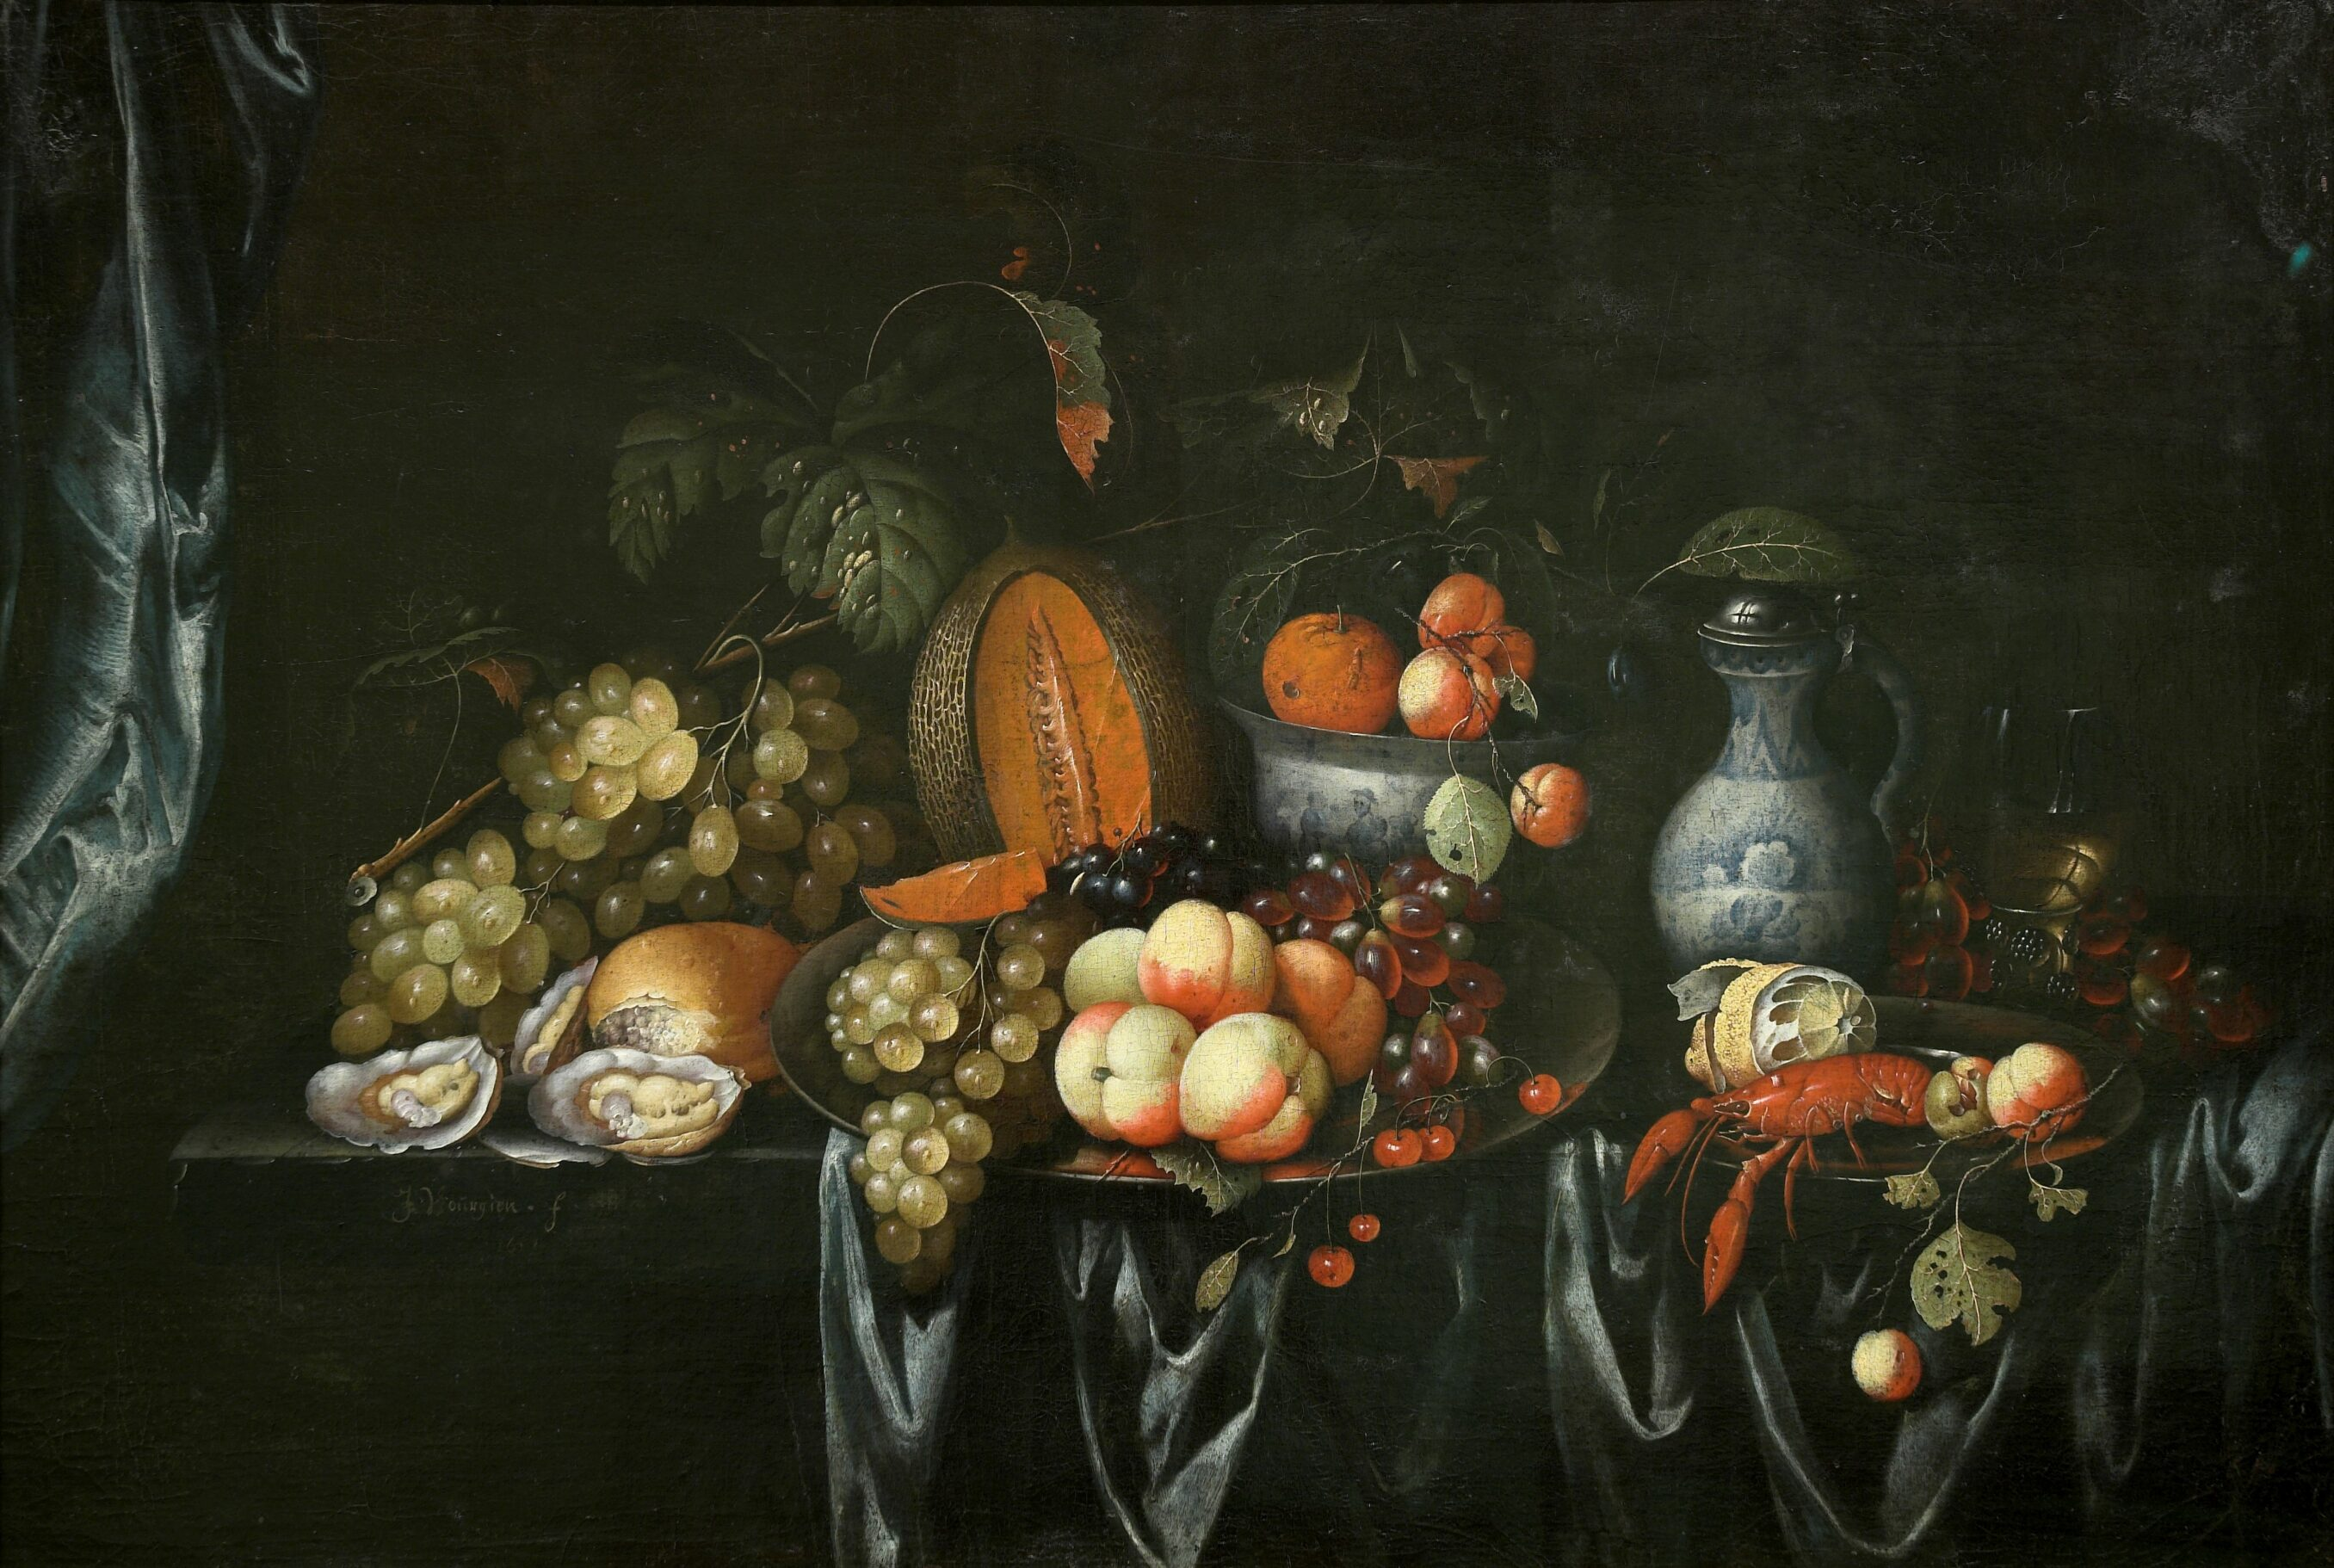 J. Bourjinon, Still life with fruit and shellfish, Auckland Art Gallery Toi o Tāmaki (gift of an anonymous donor, 1954)